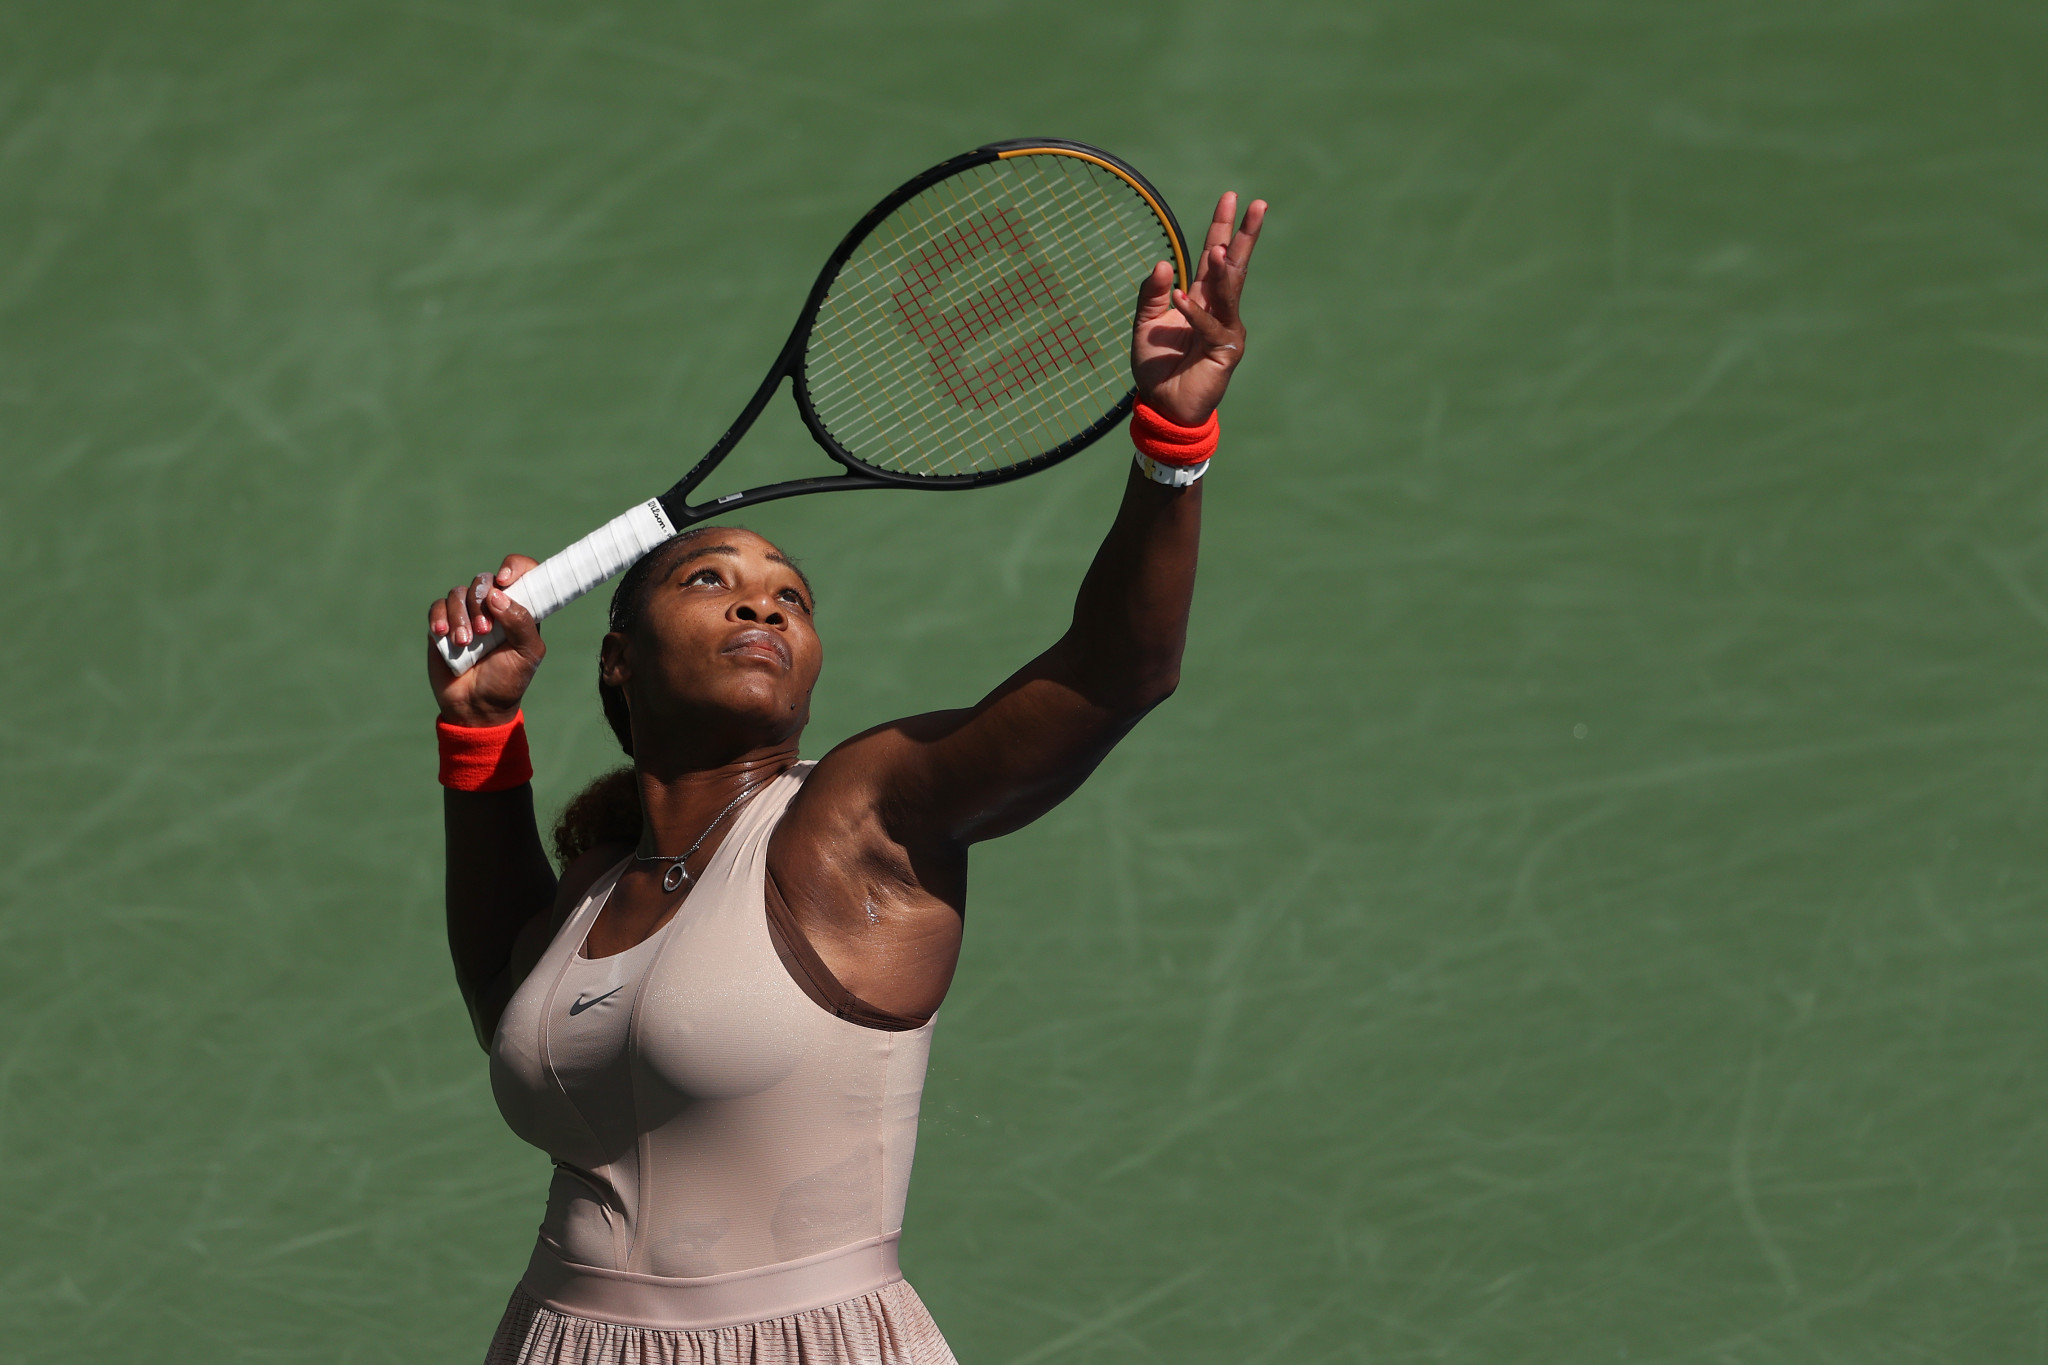 Williams and Thiem book quarter-final places as US Open enters second week